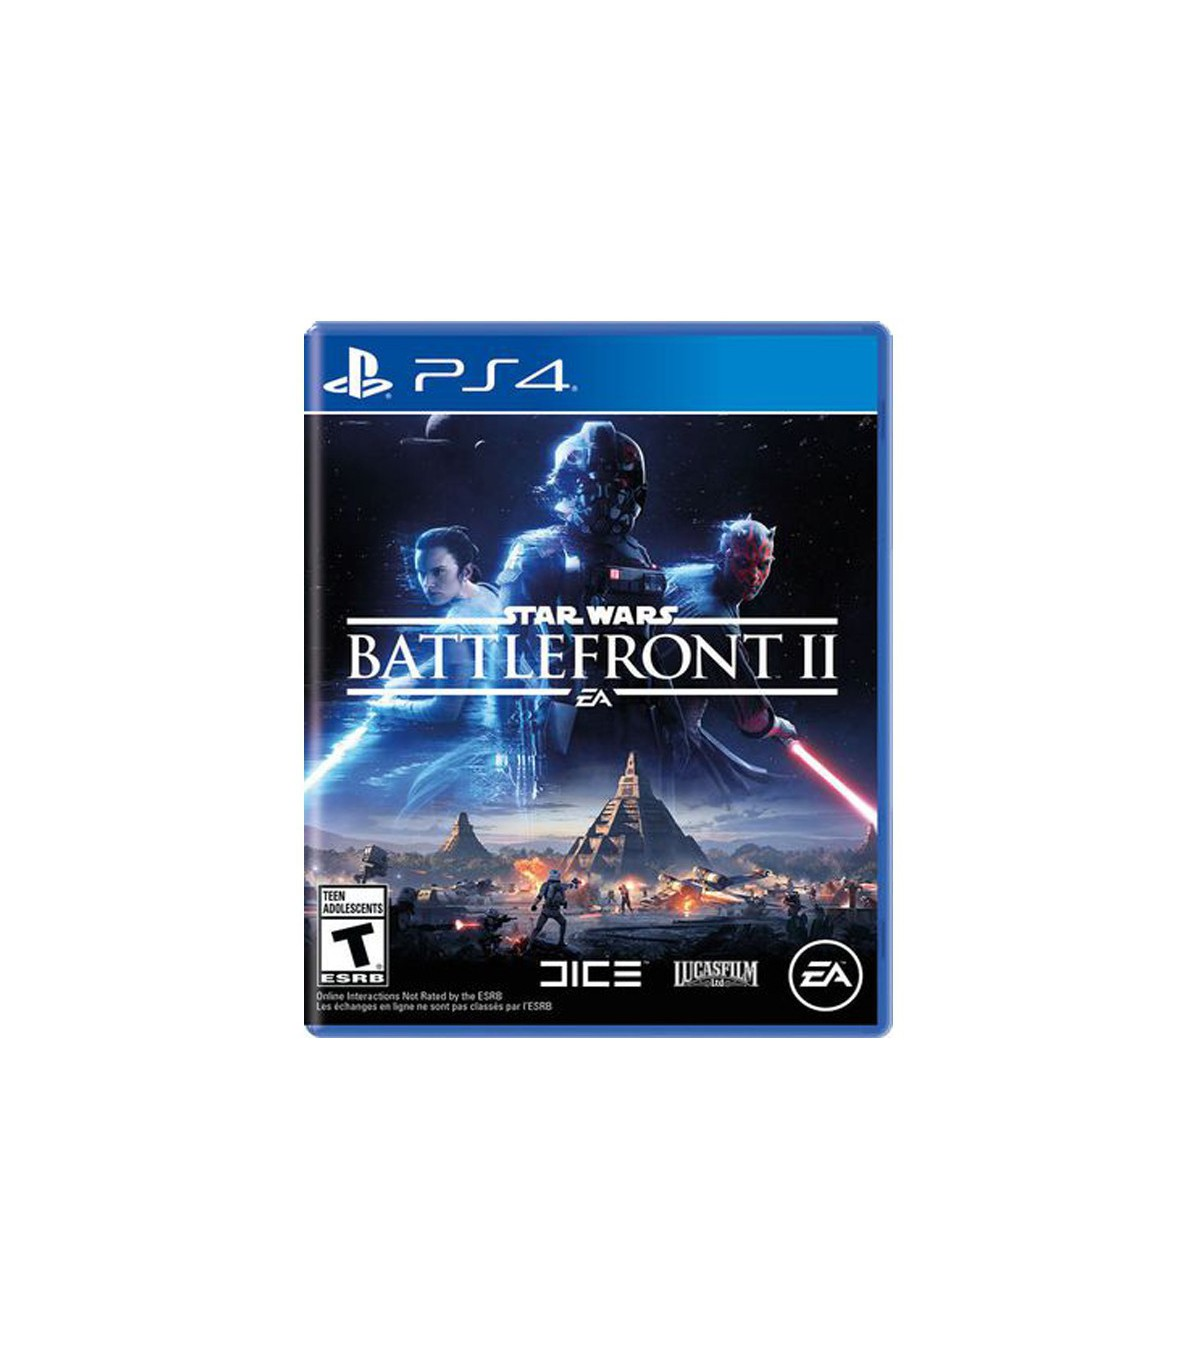 بازی Star Wars Battlefront II - پلی استیشن 4